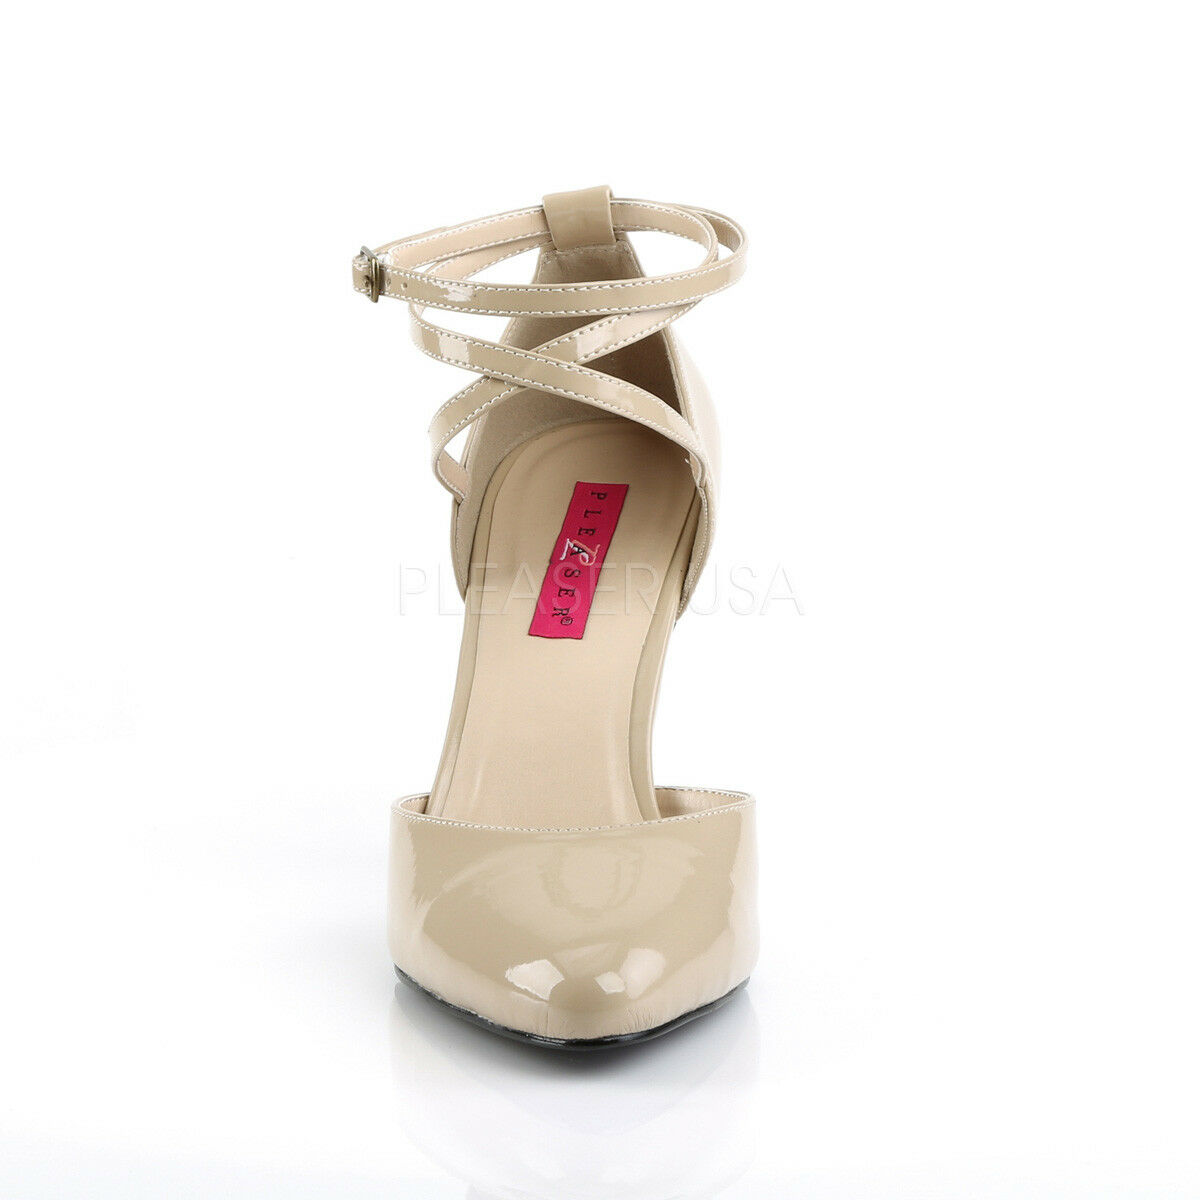 PLEASER Rosa LABEL LABEL LABEL DREAM-408 CREAM PATENT CRISS-CROSS ANKLE STRAP schuhe 23ff3b